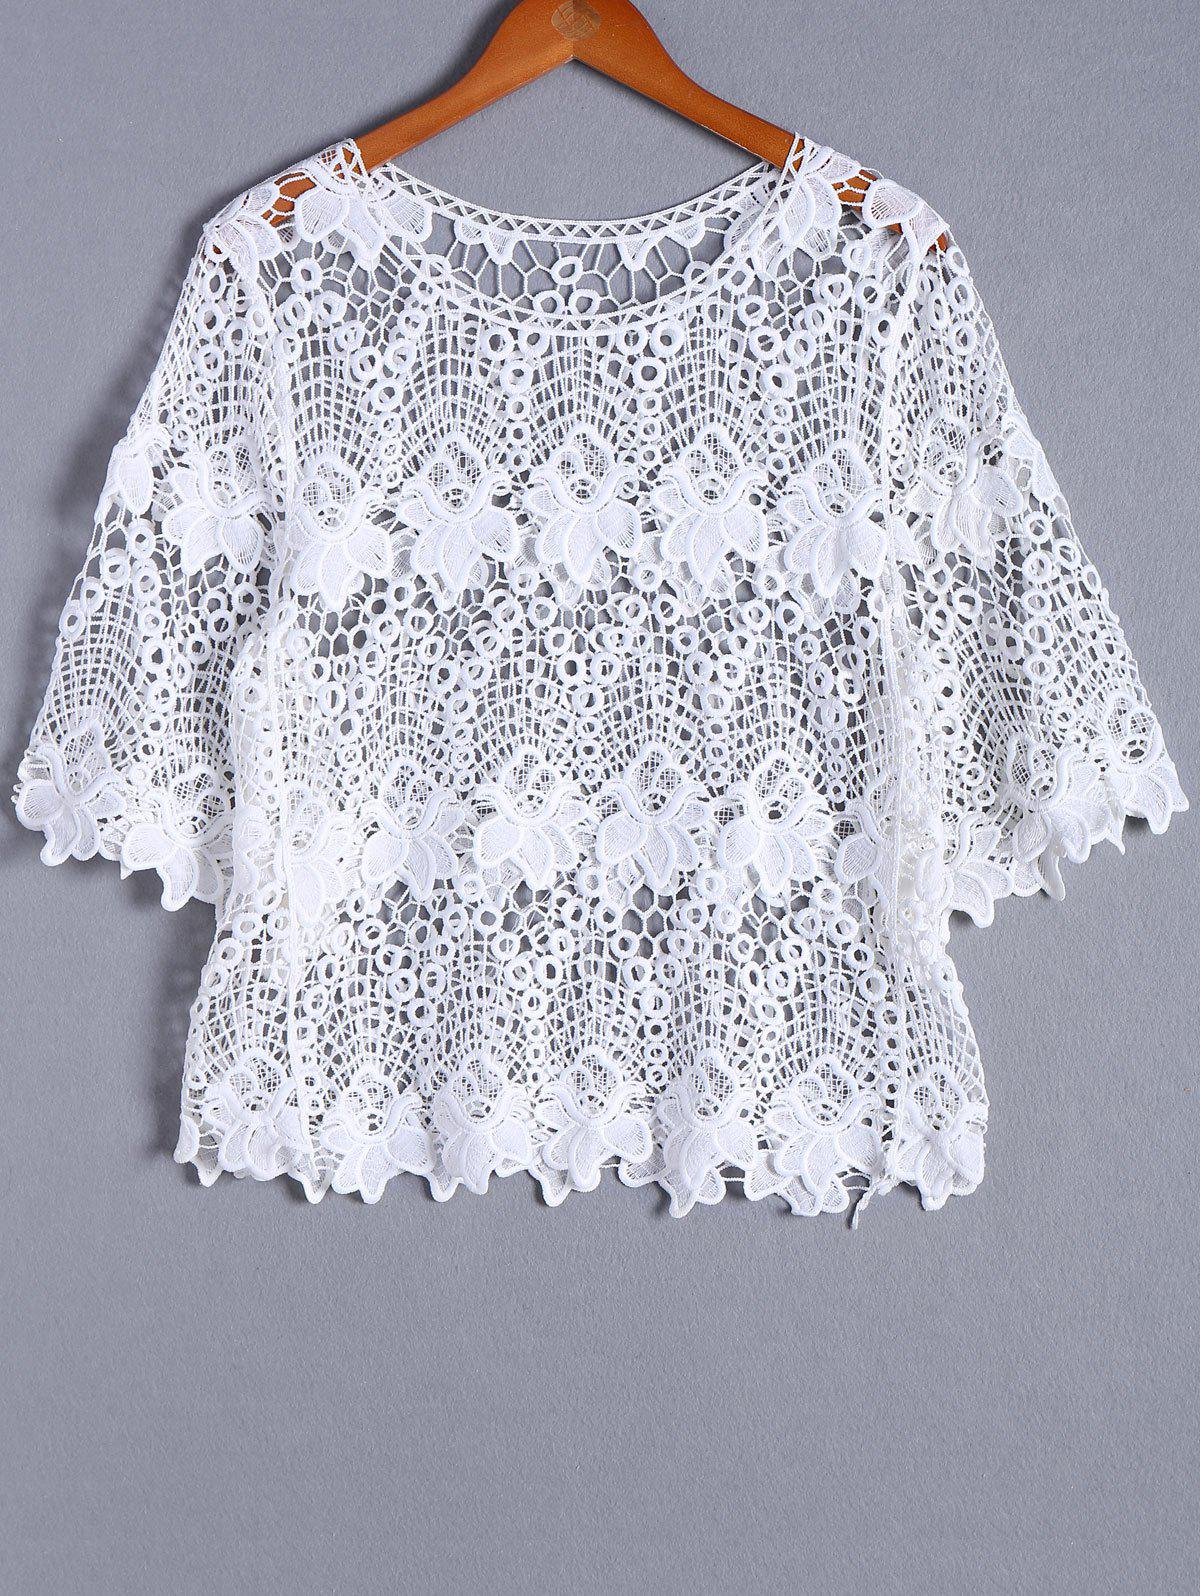 Casual Openwork Round Neck Bell Sleeve Blouse For Women